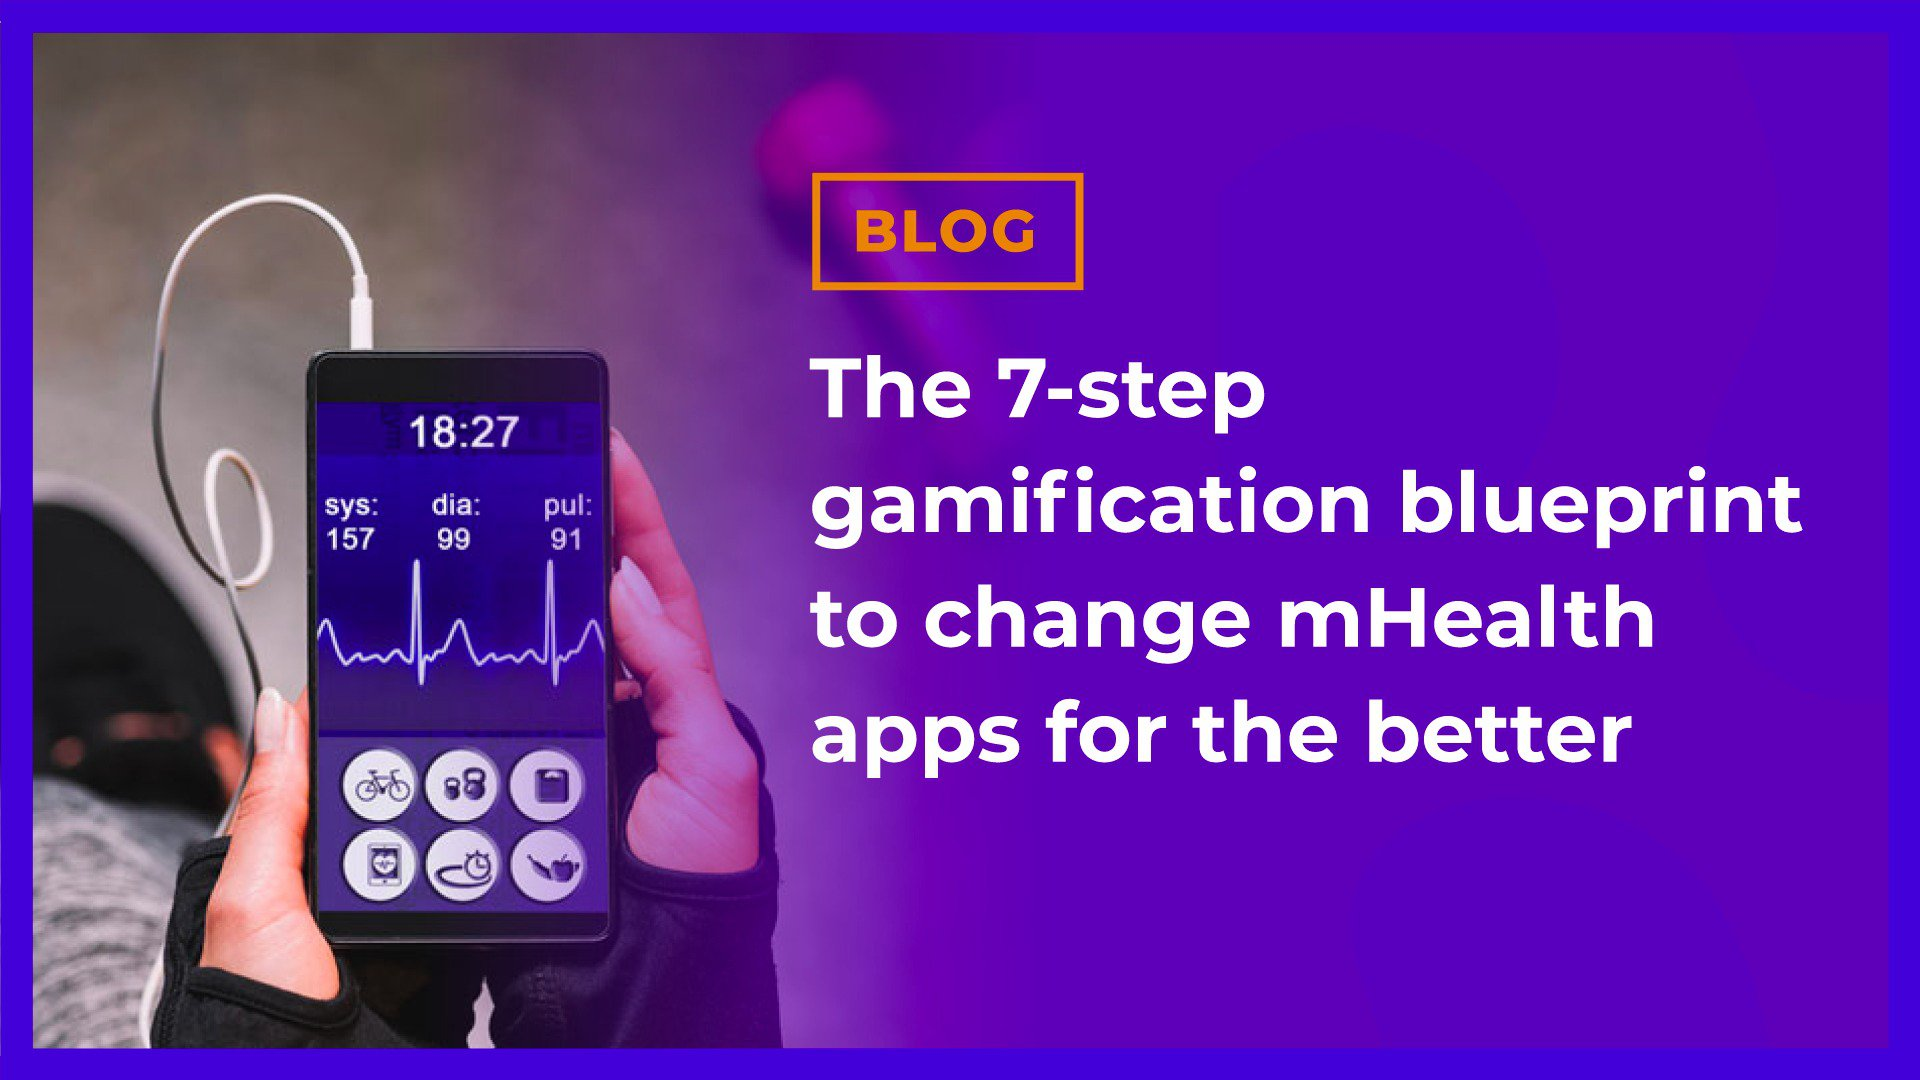 The 7-step gamification blueprint to change mHealth apps for the better